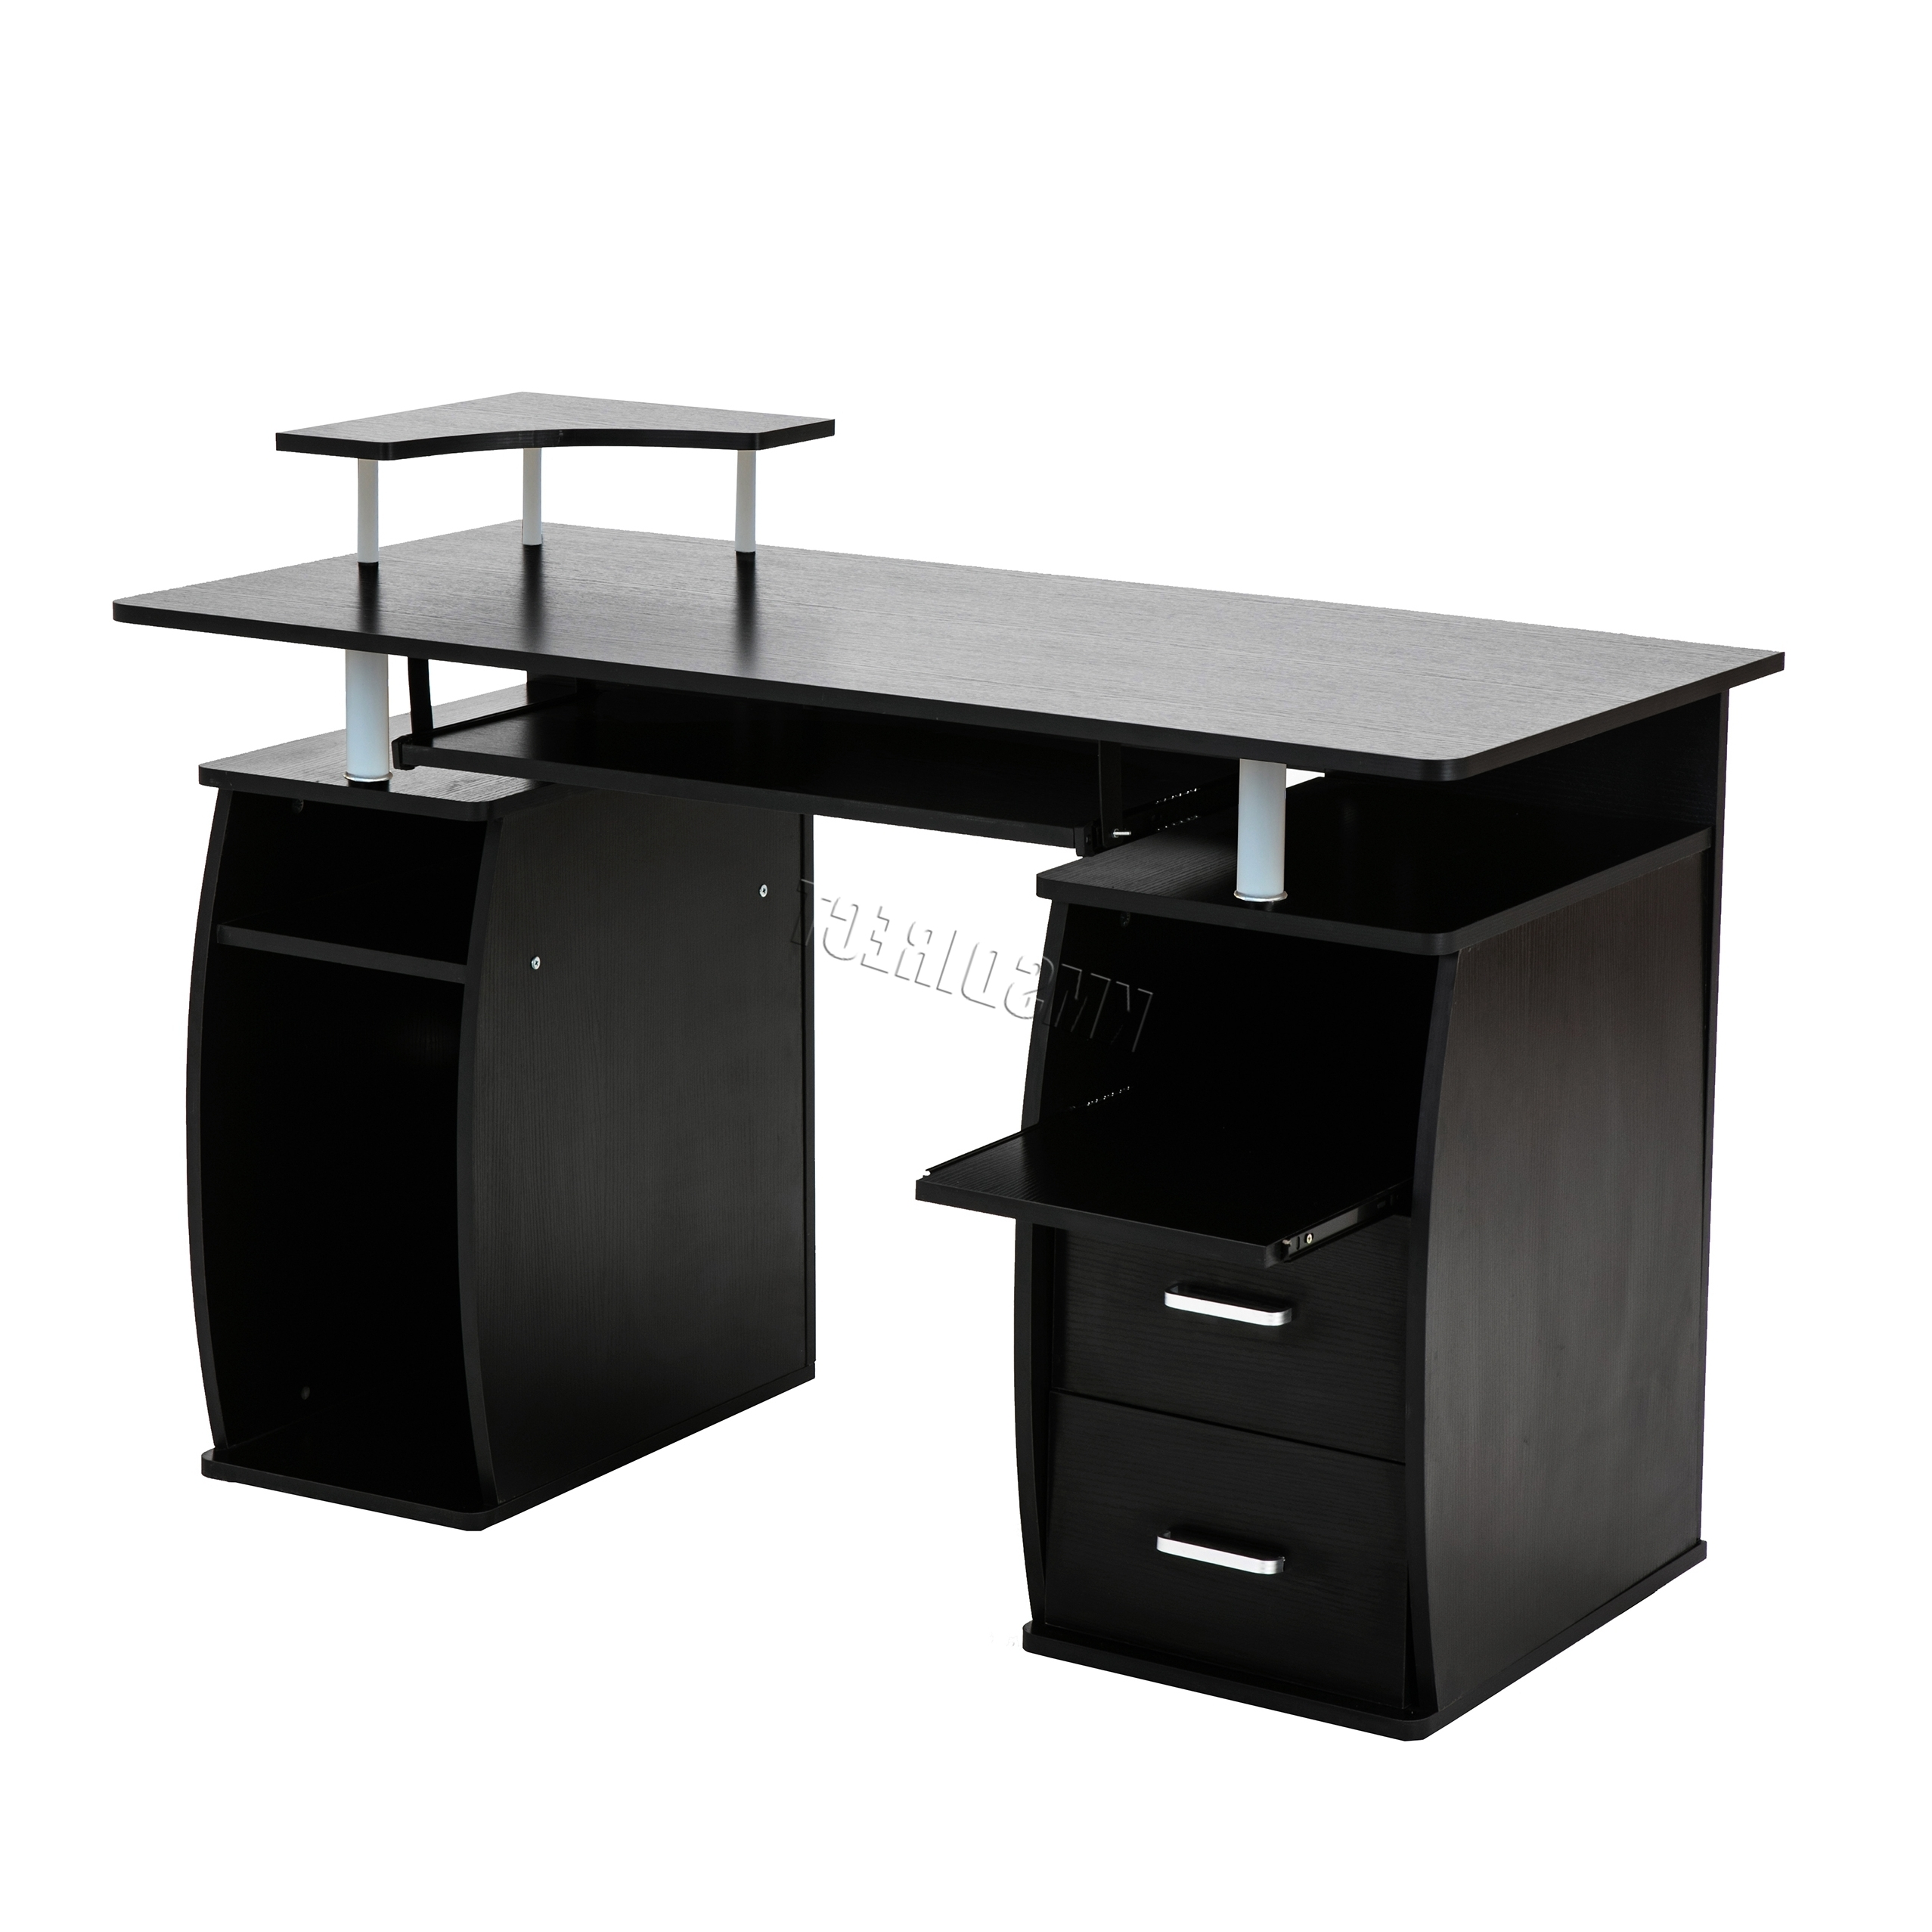 Widely Used Black Computer Desks Inside Westwood Computer Desk Pc Table With Shelves Drawers Home Office (View 20 of 20)